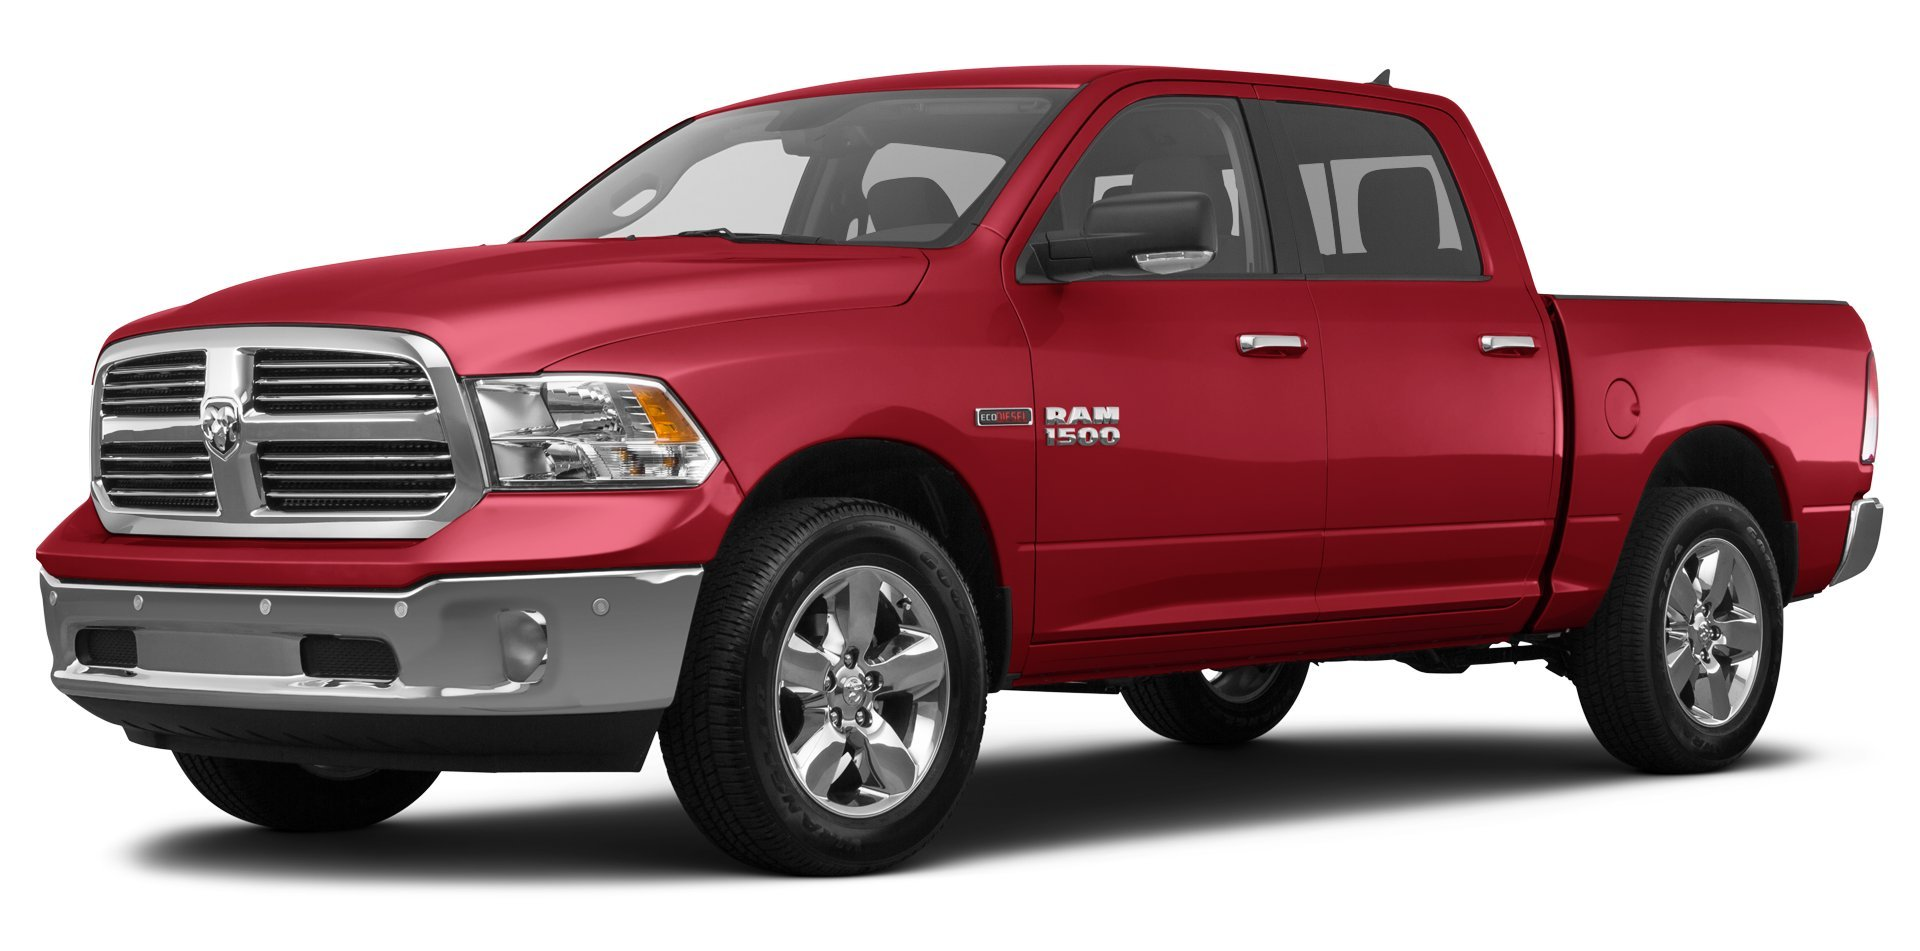 Amazon.com: 2016 Ram 1500 Reviews, Images, and Specs: Vehicles